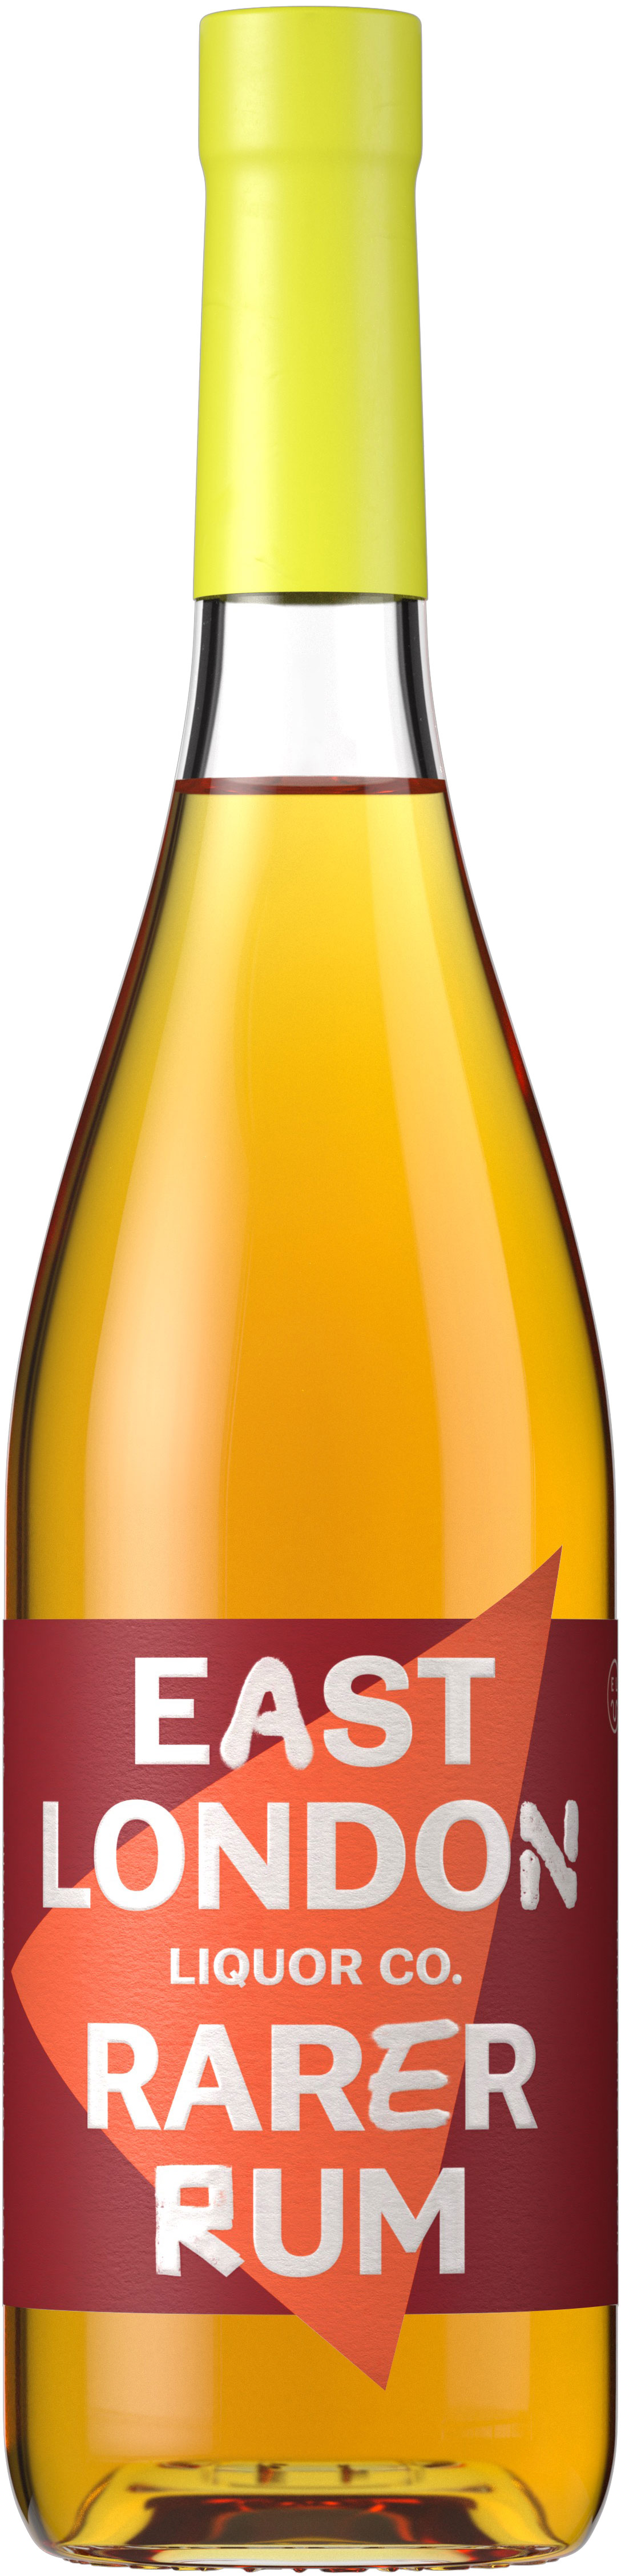 East London Liquor Company - Demerara Rum 70cl Bottle